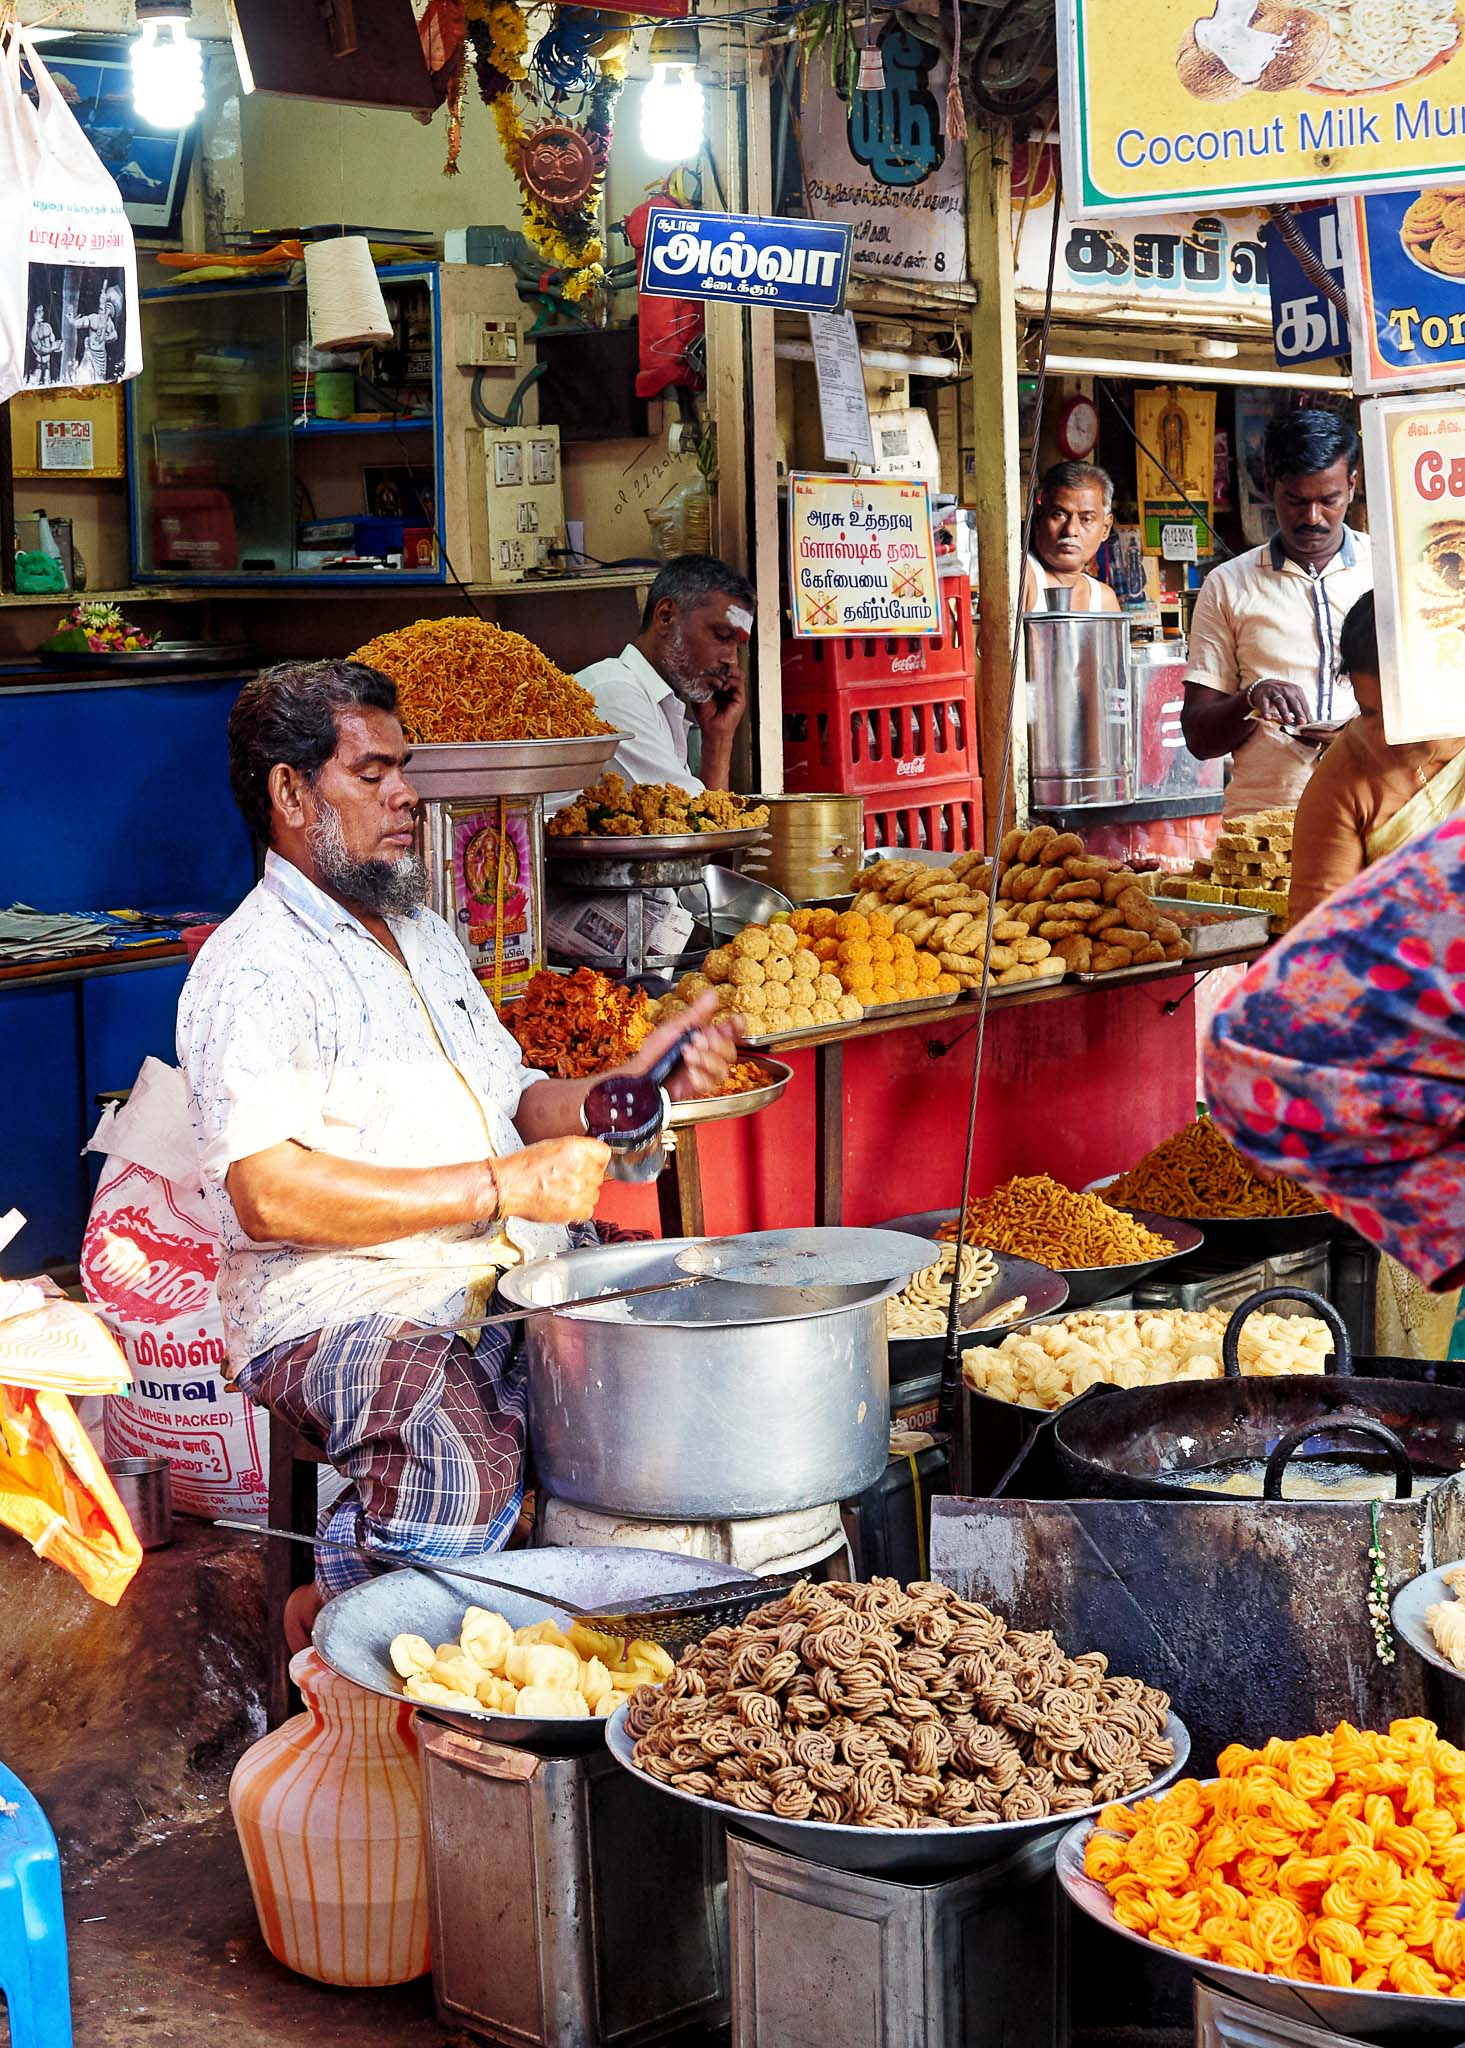 A cook preparing snacks and sweets at the street side shop, Madurai, Tamil Nadu, India